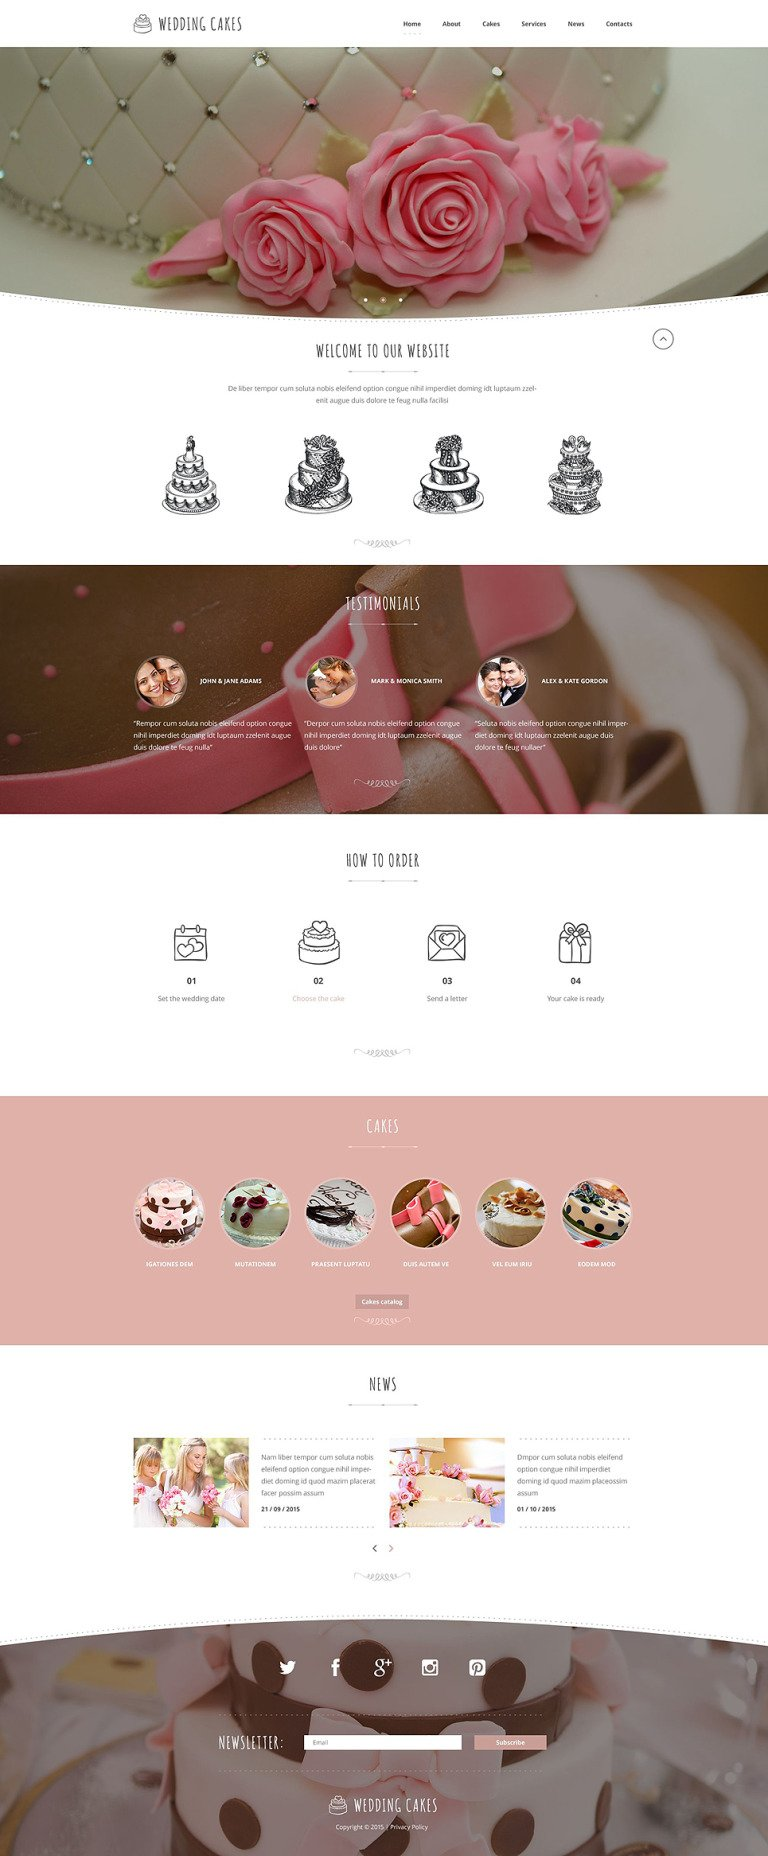 Wedding Cake Co Website Template New Screenshots BIG